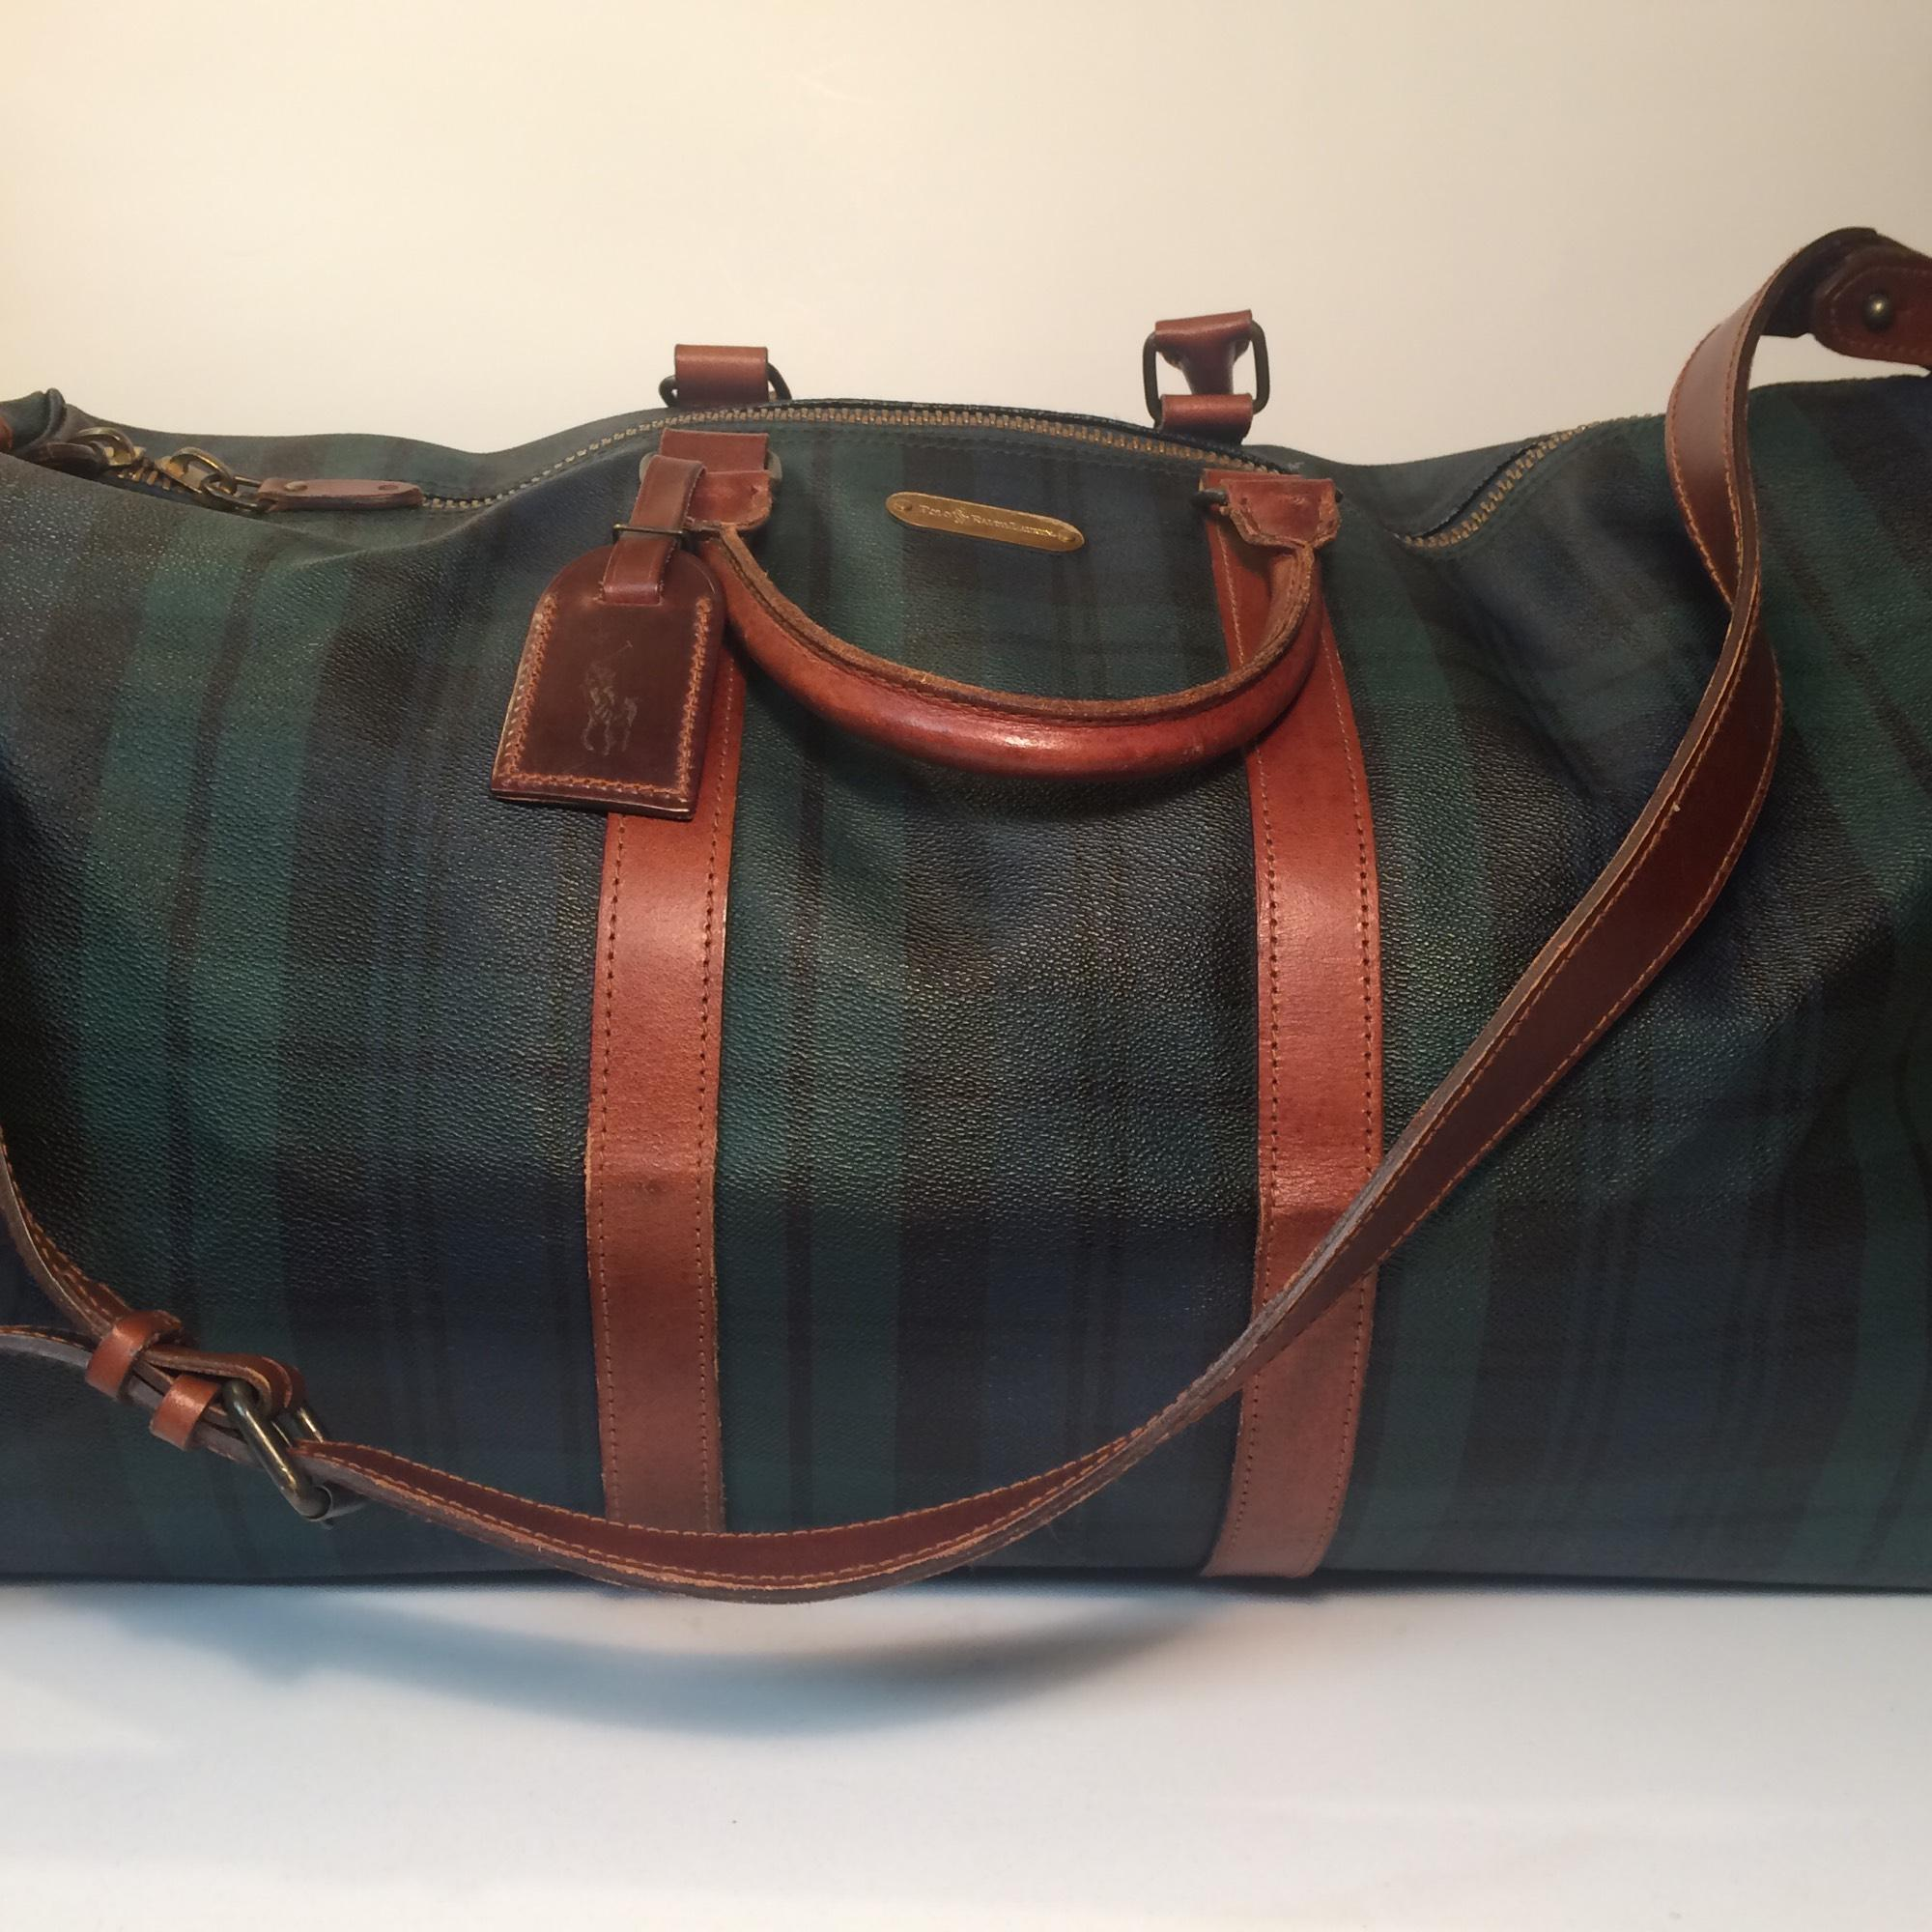 BRAND NEW RALPH LAUREN WORLD OF POLO BLUE WEEKEND TRAVEL HOLDALL GYM SPORTS BAG